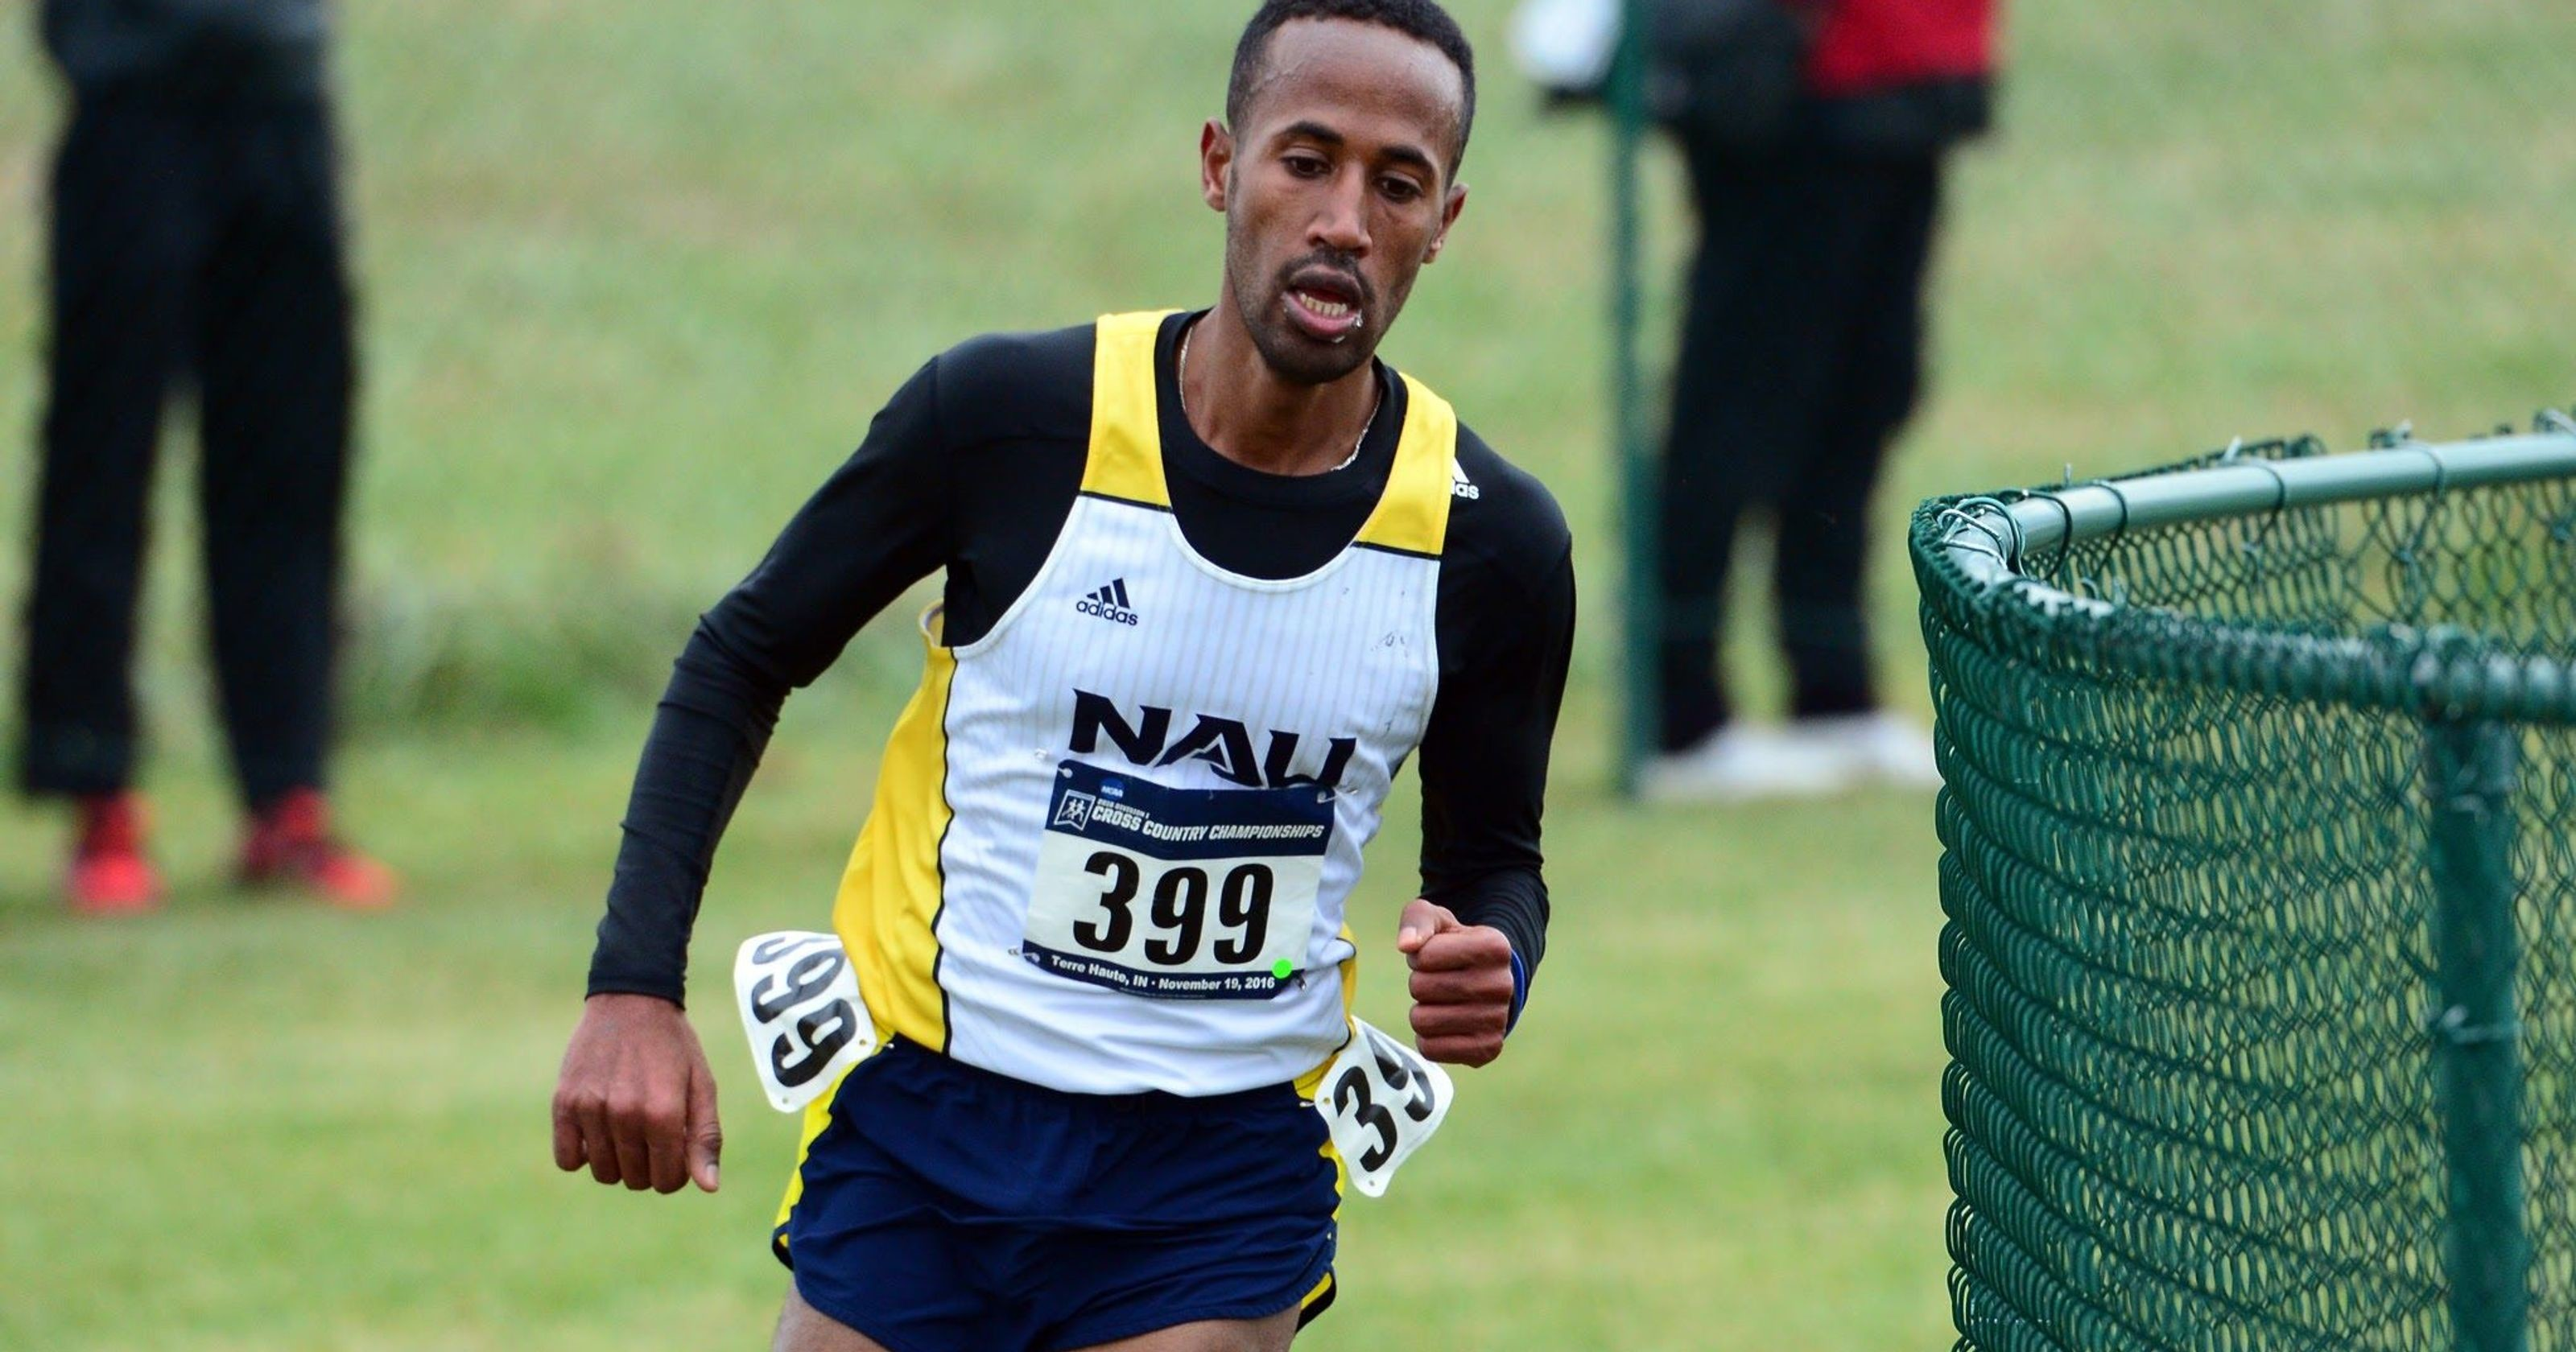 Former Northern Arizona runner Futsum Zienasellassie ready for Falmouth Road Race